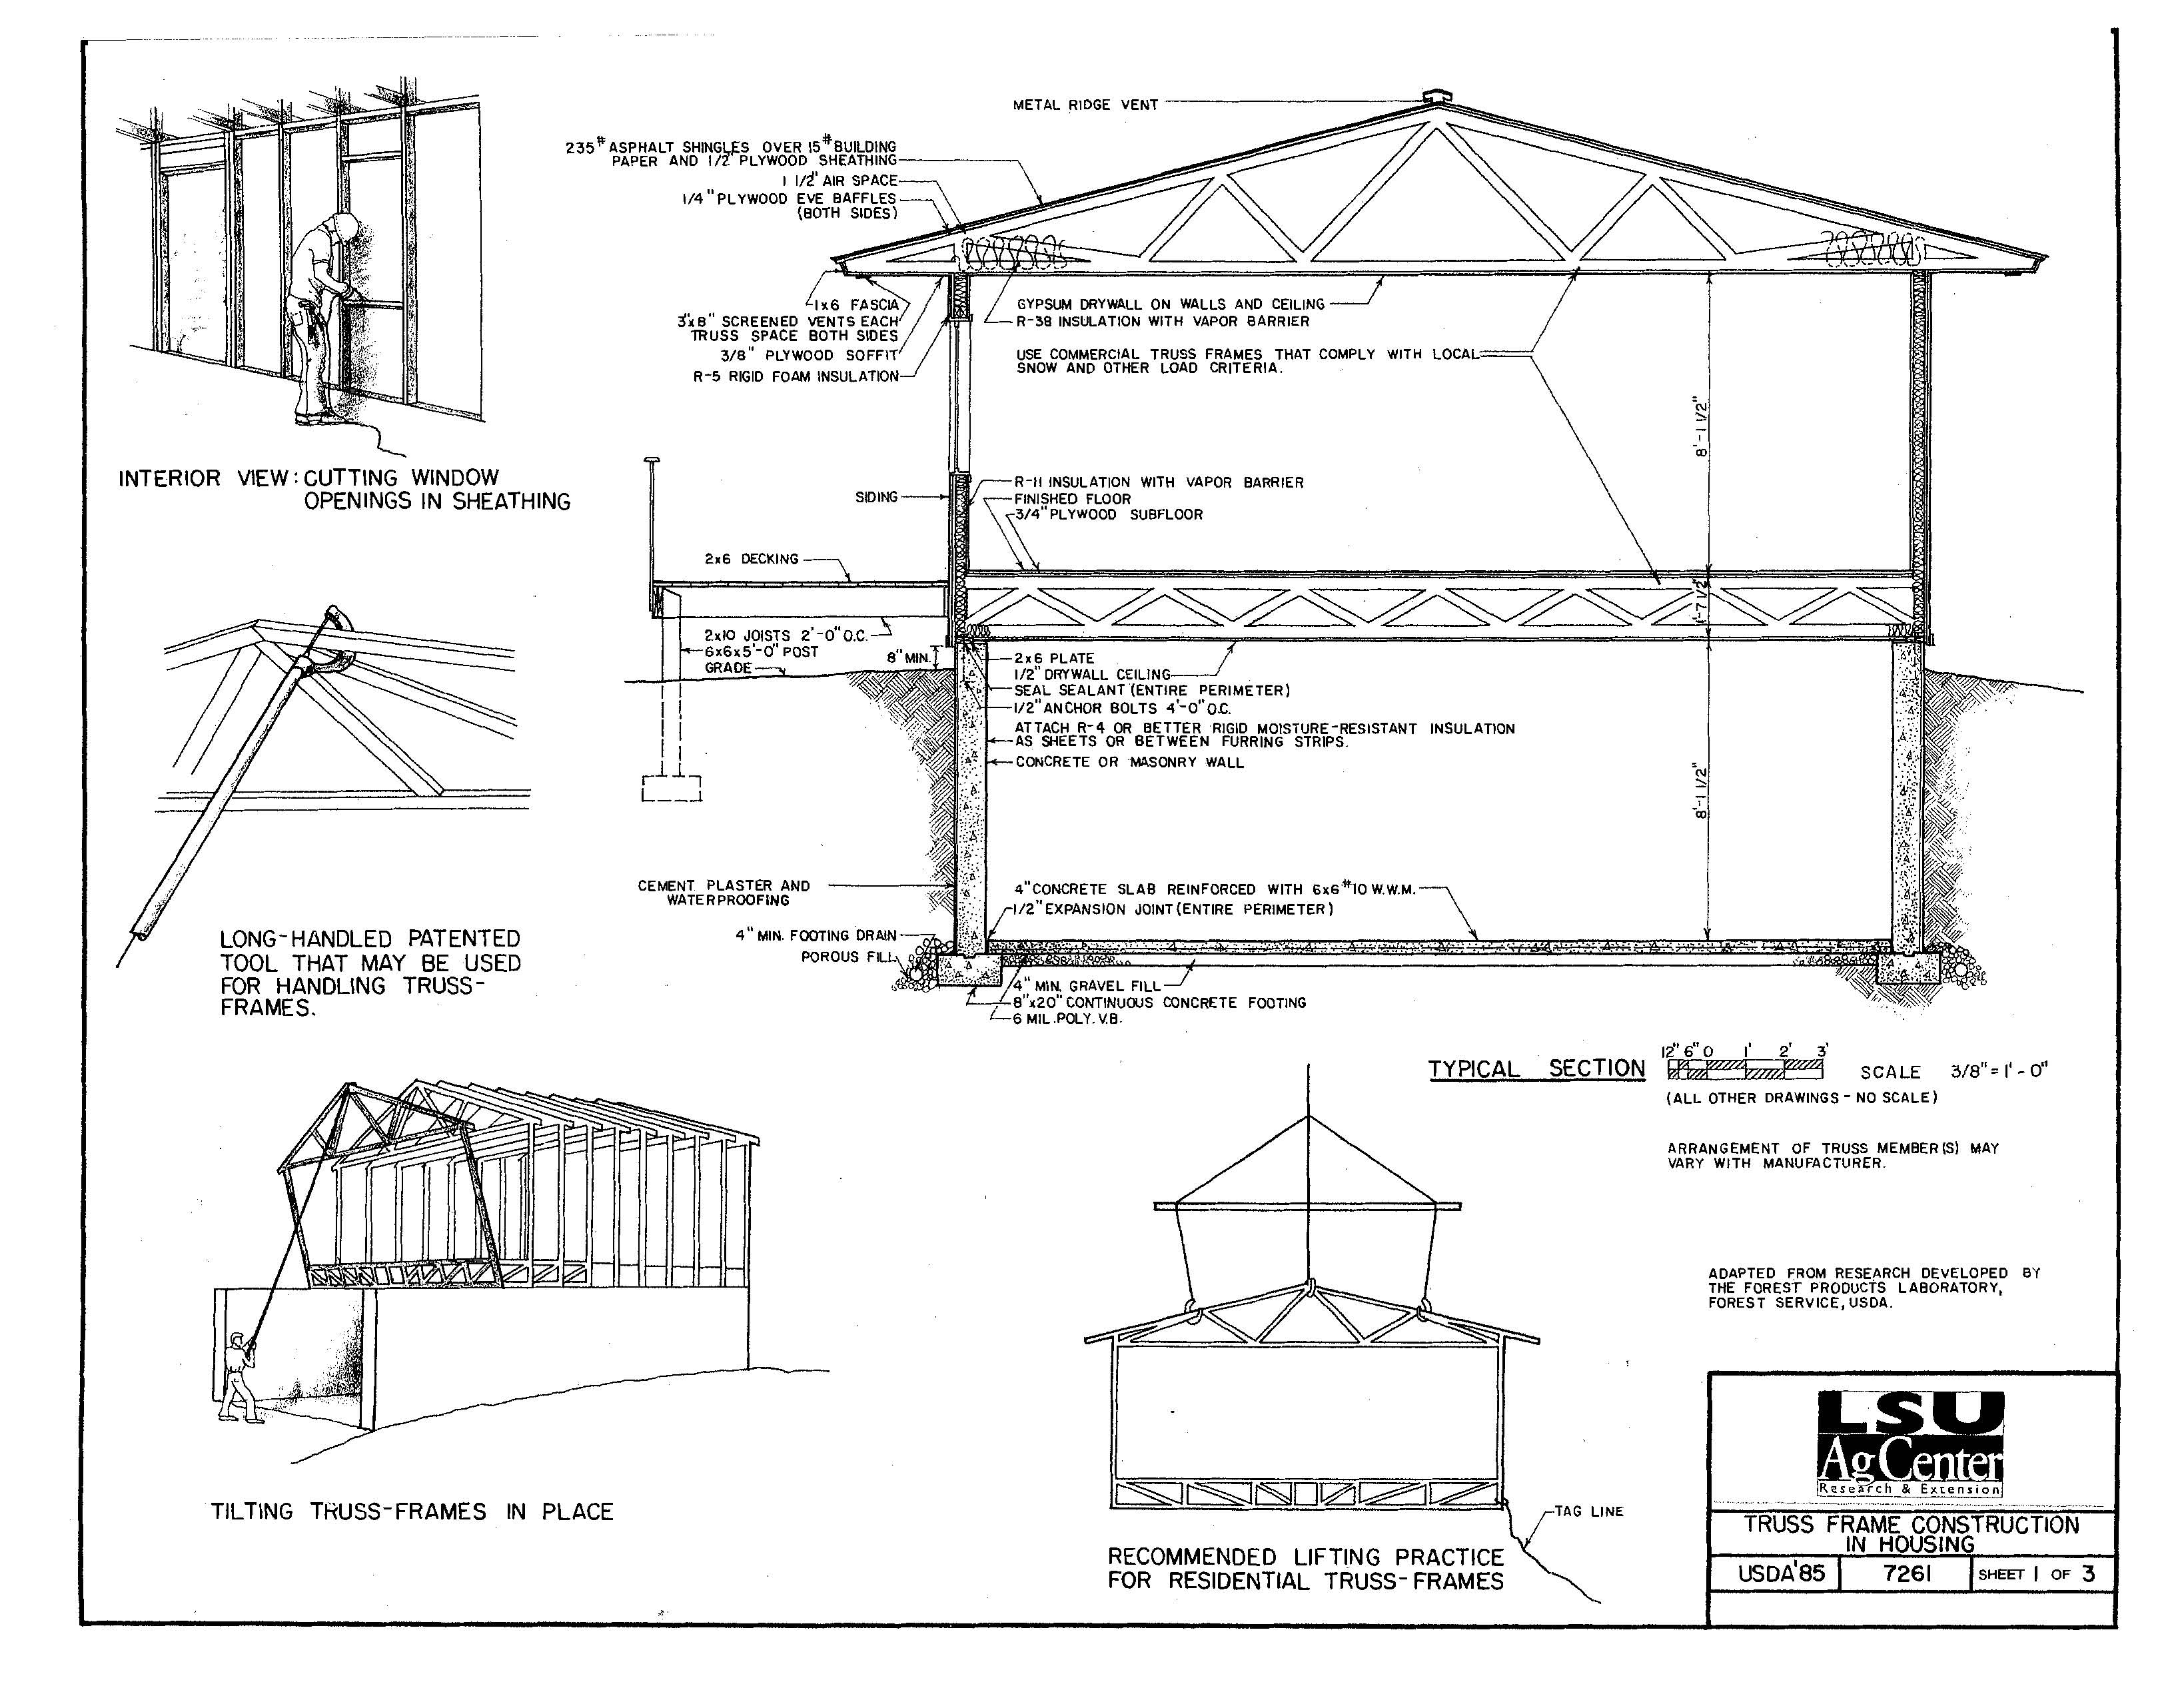 Truss Frame Construction in Housing